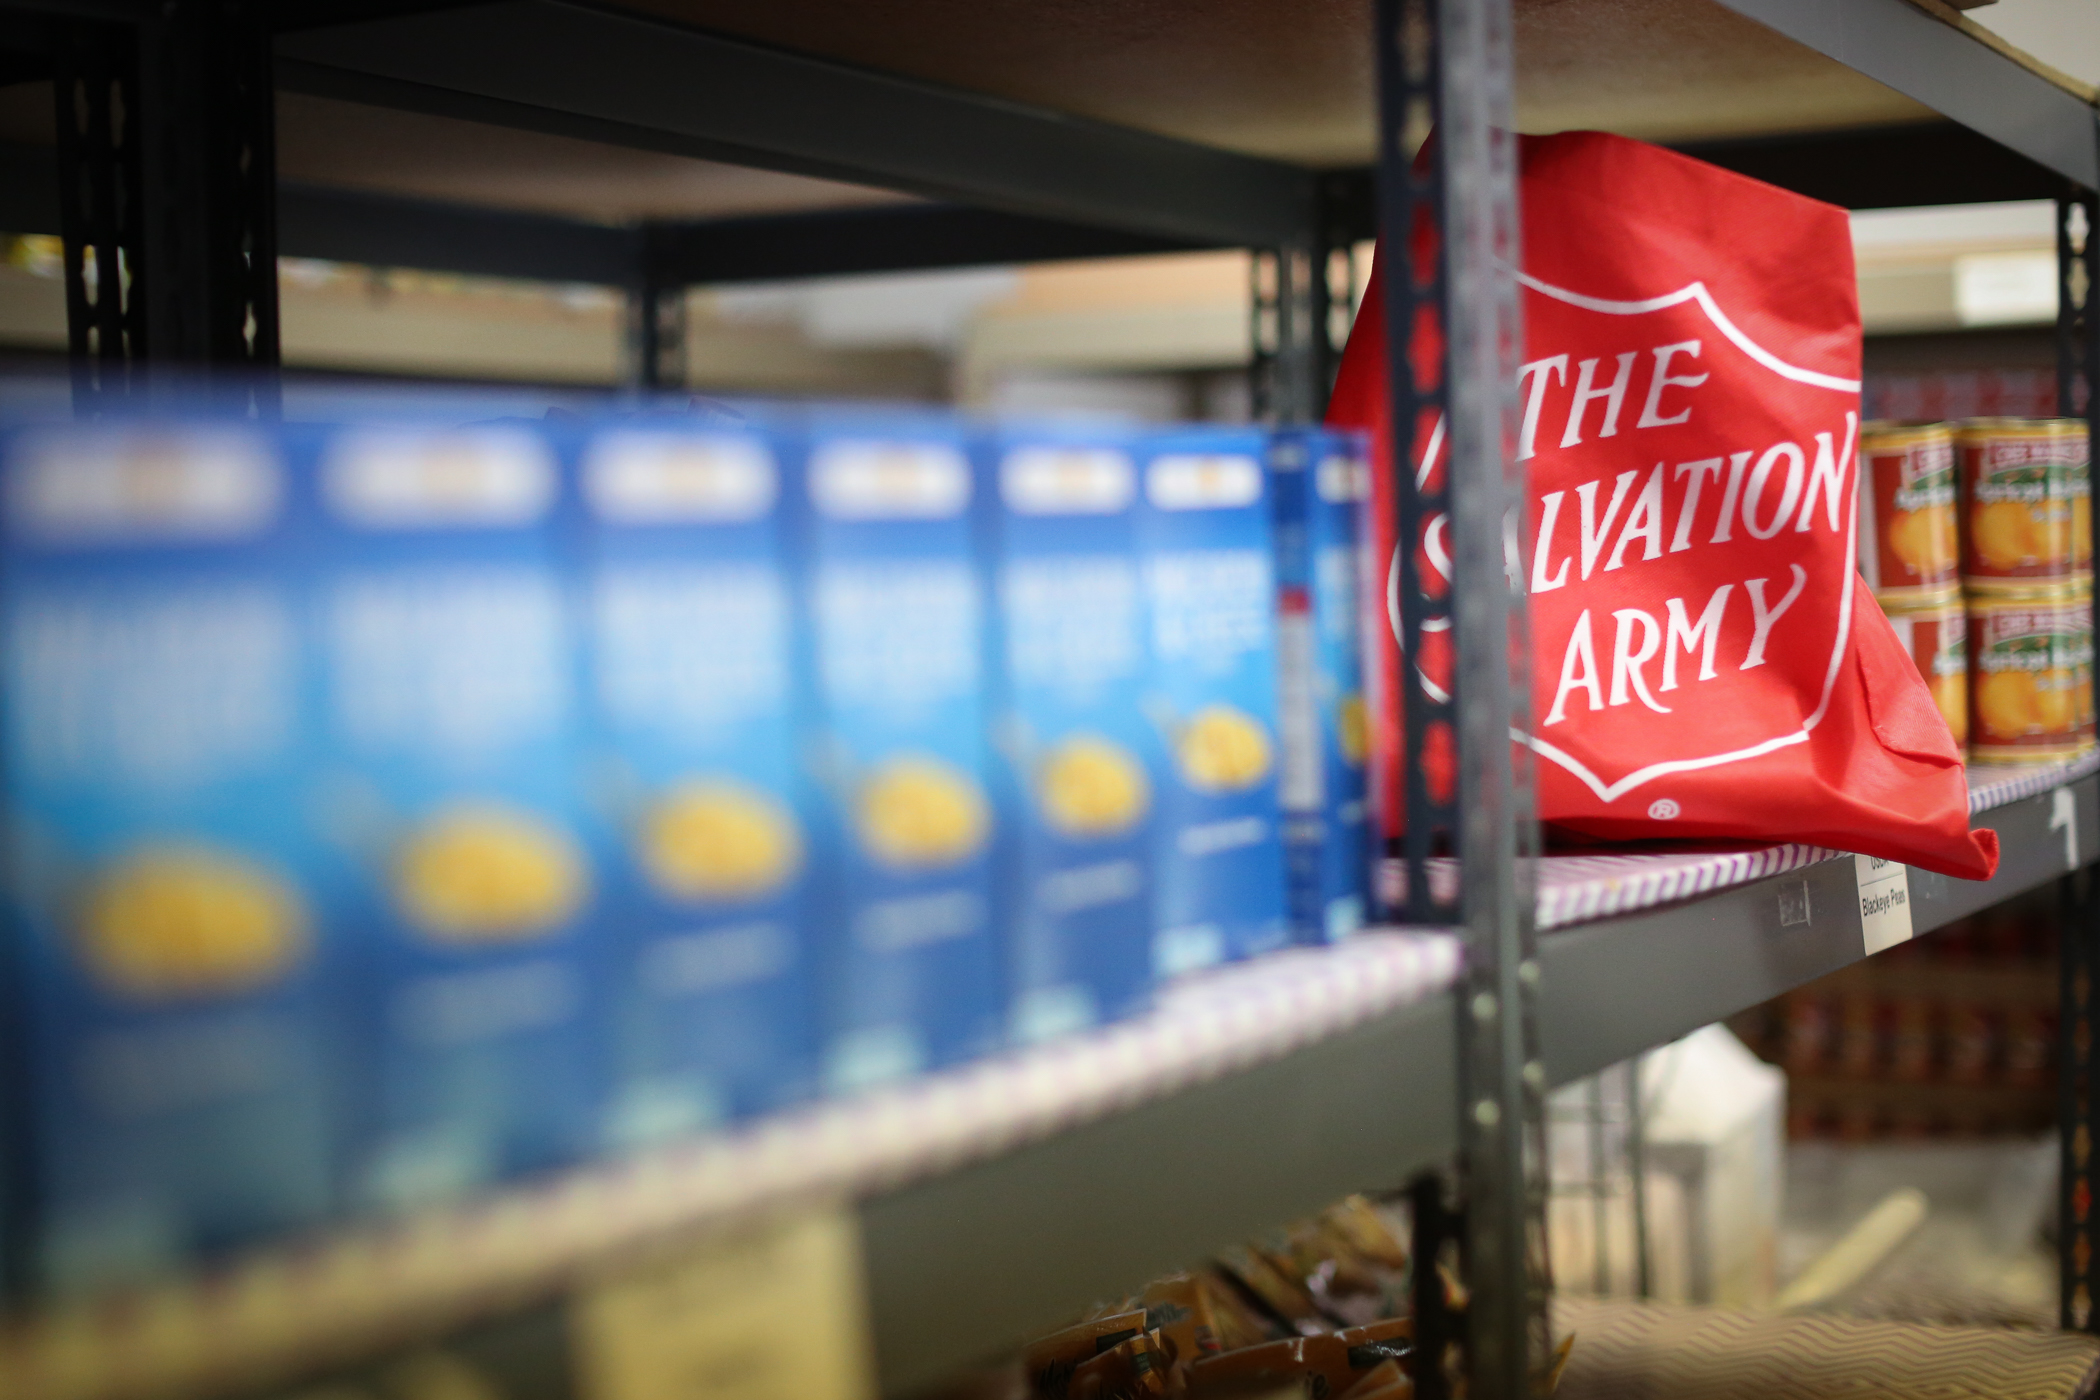 Salvation Army bag on shelf in food pantry